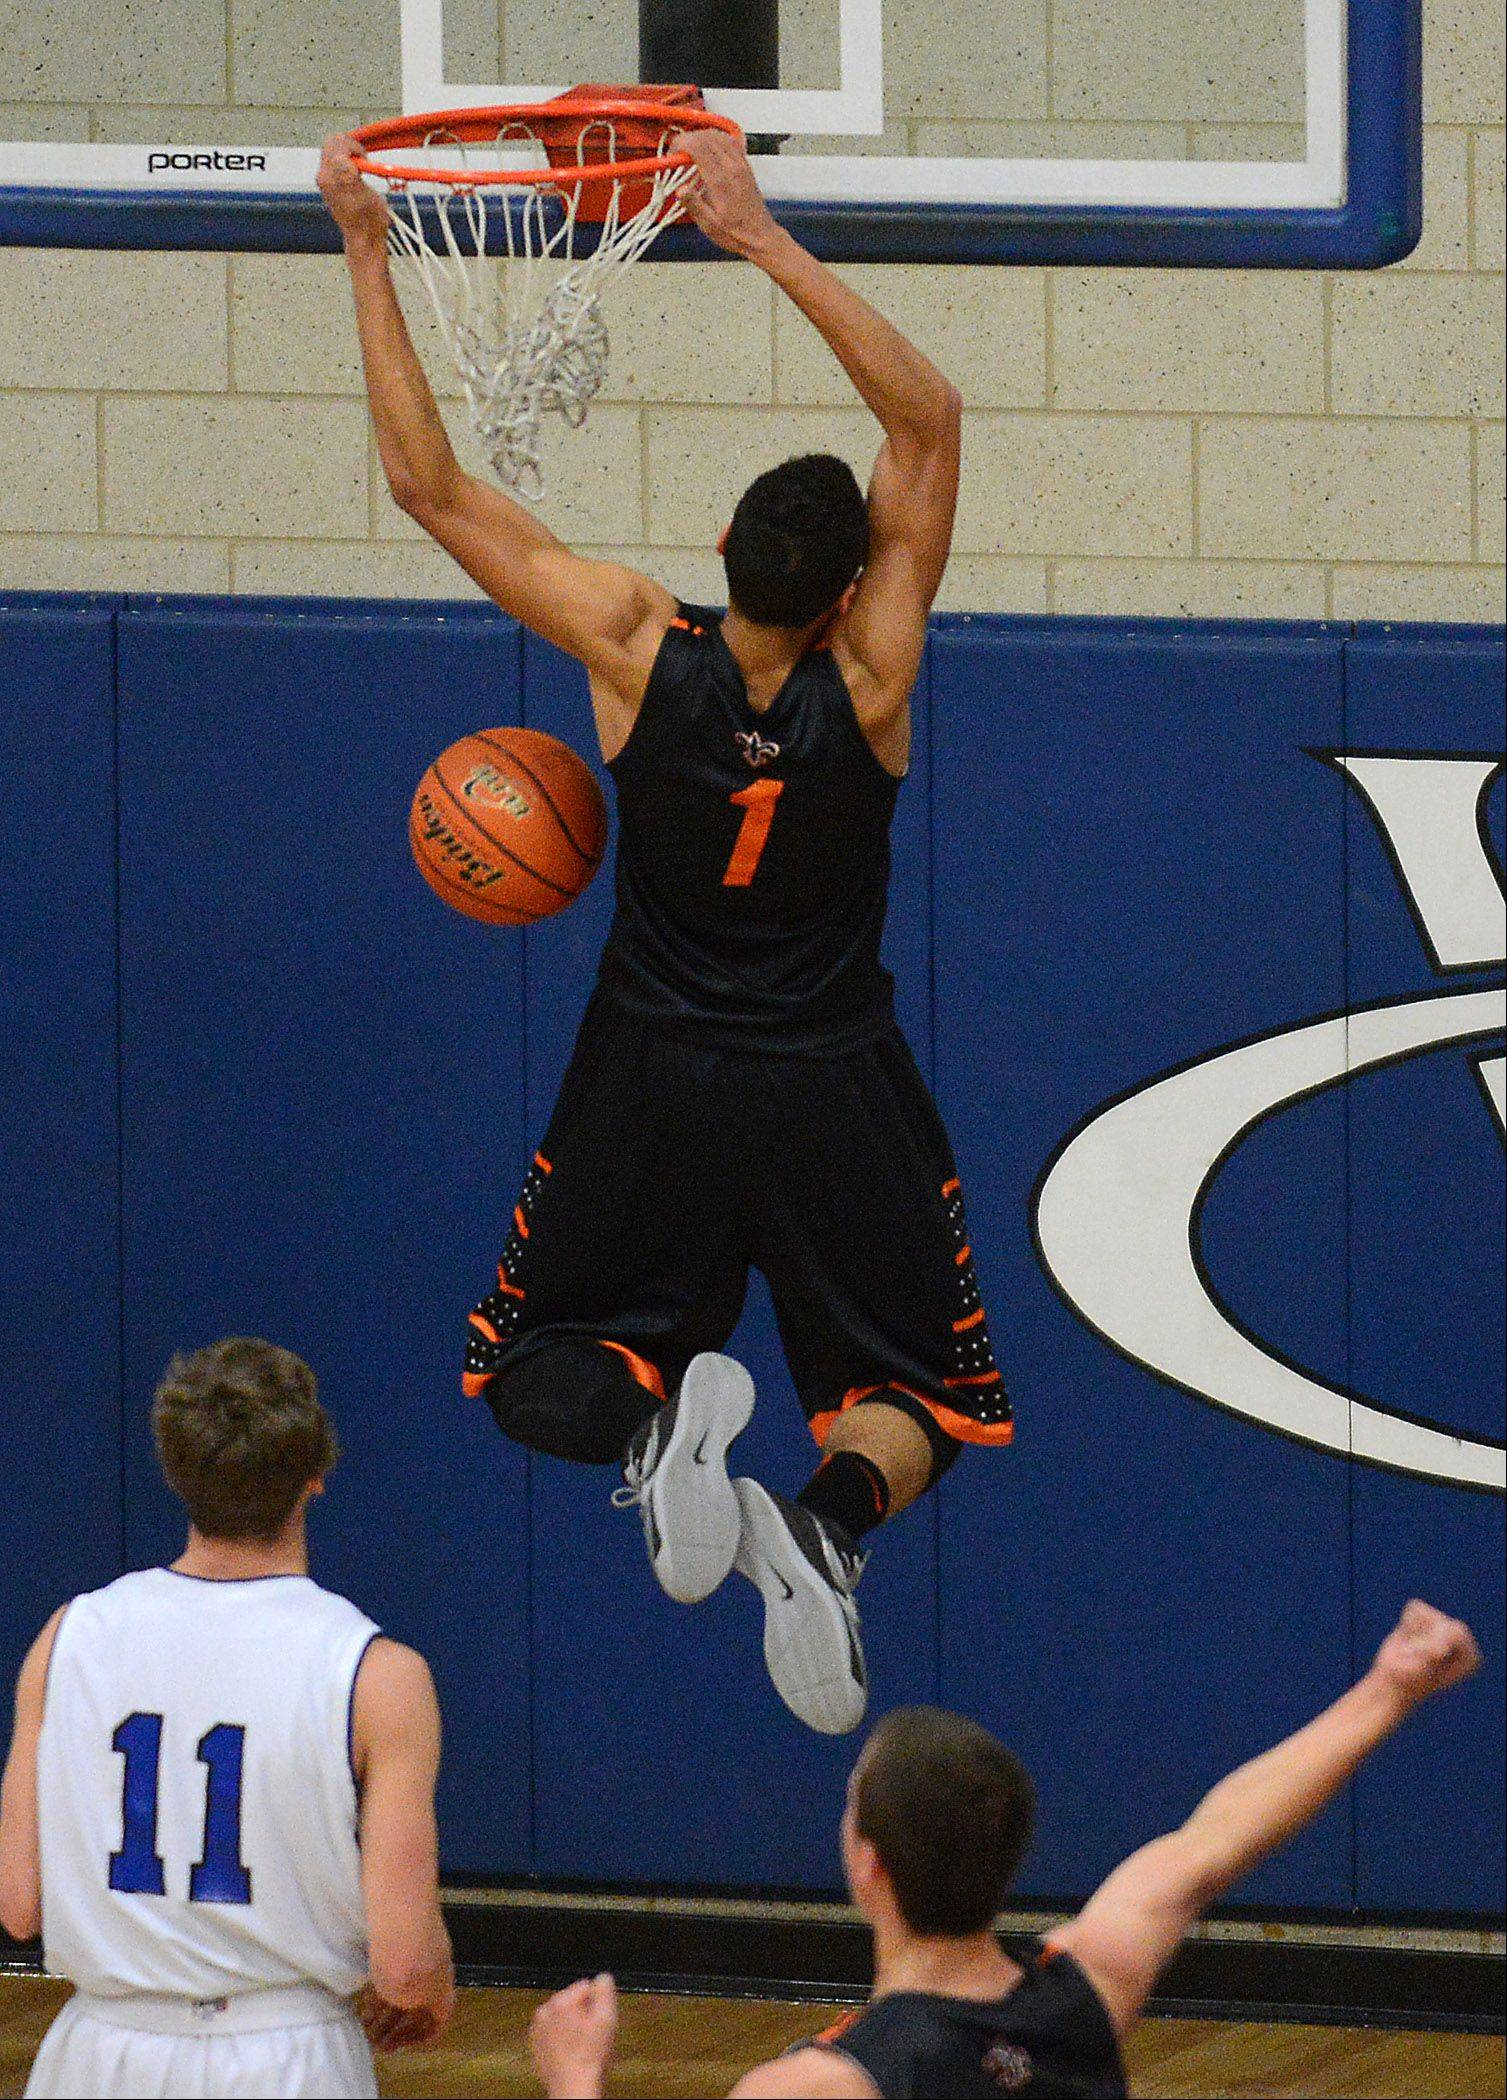 St. Charles East stays in River race